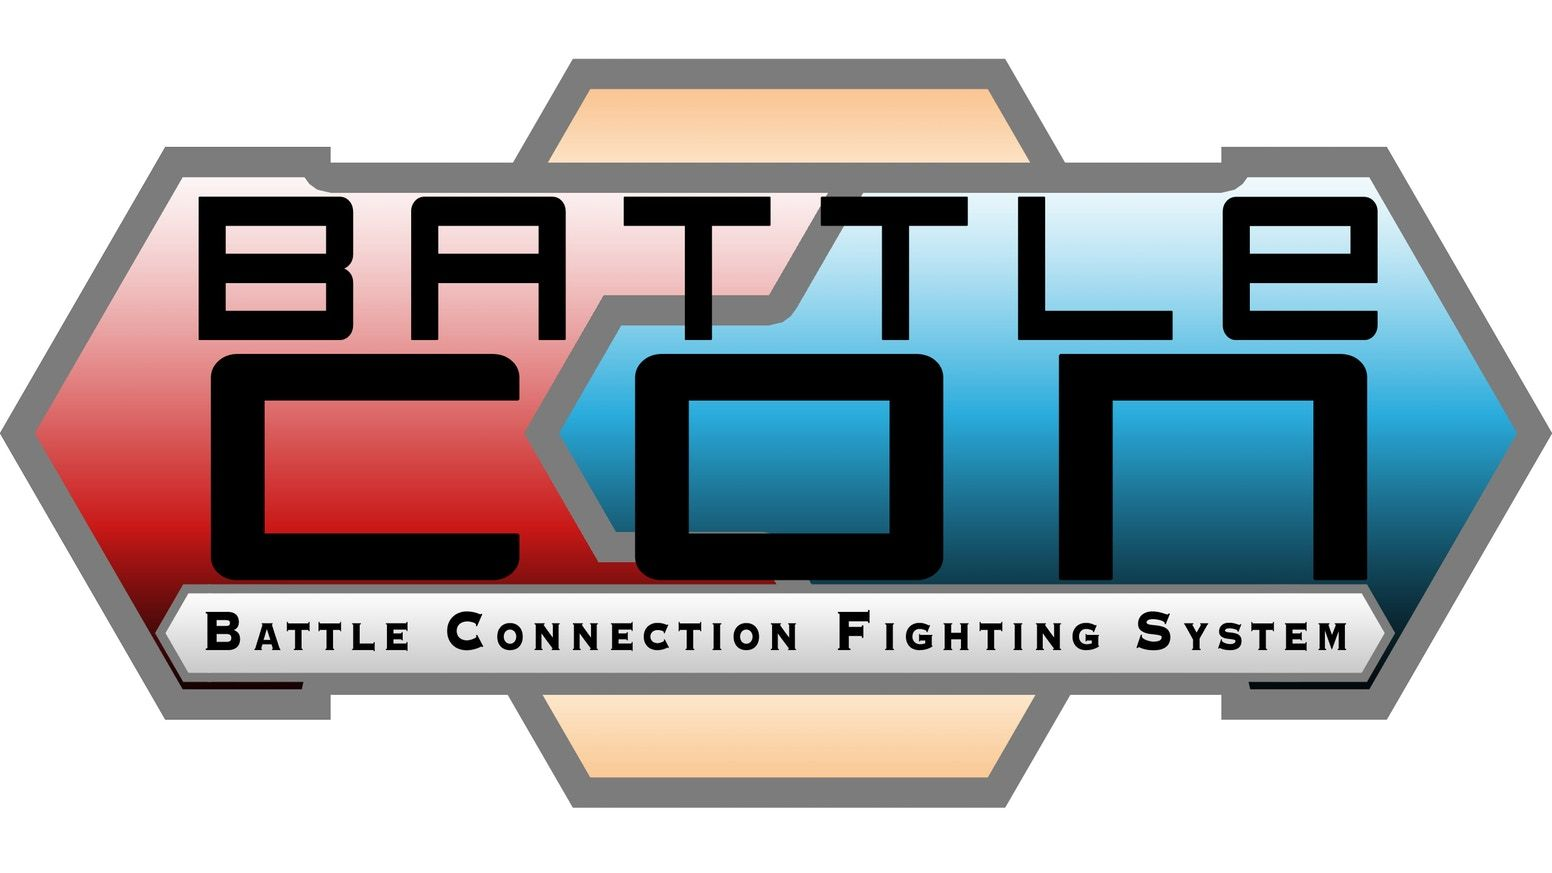 BattleCON Fighting System